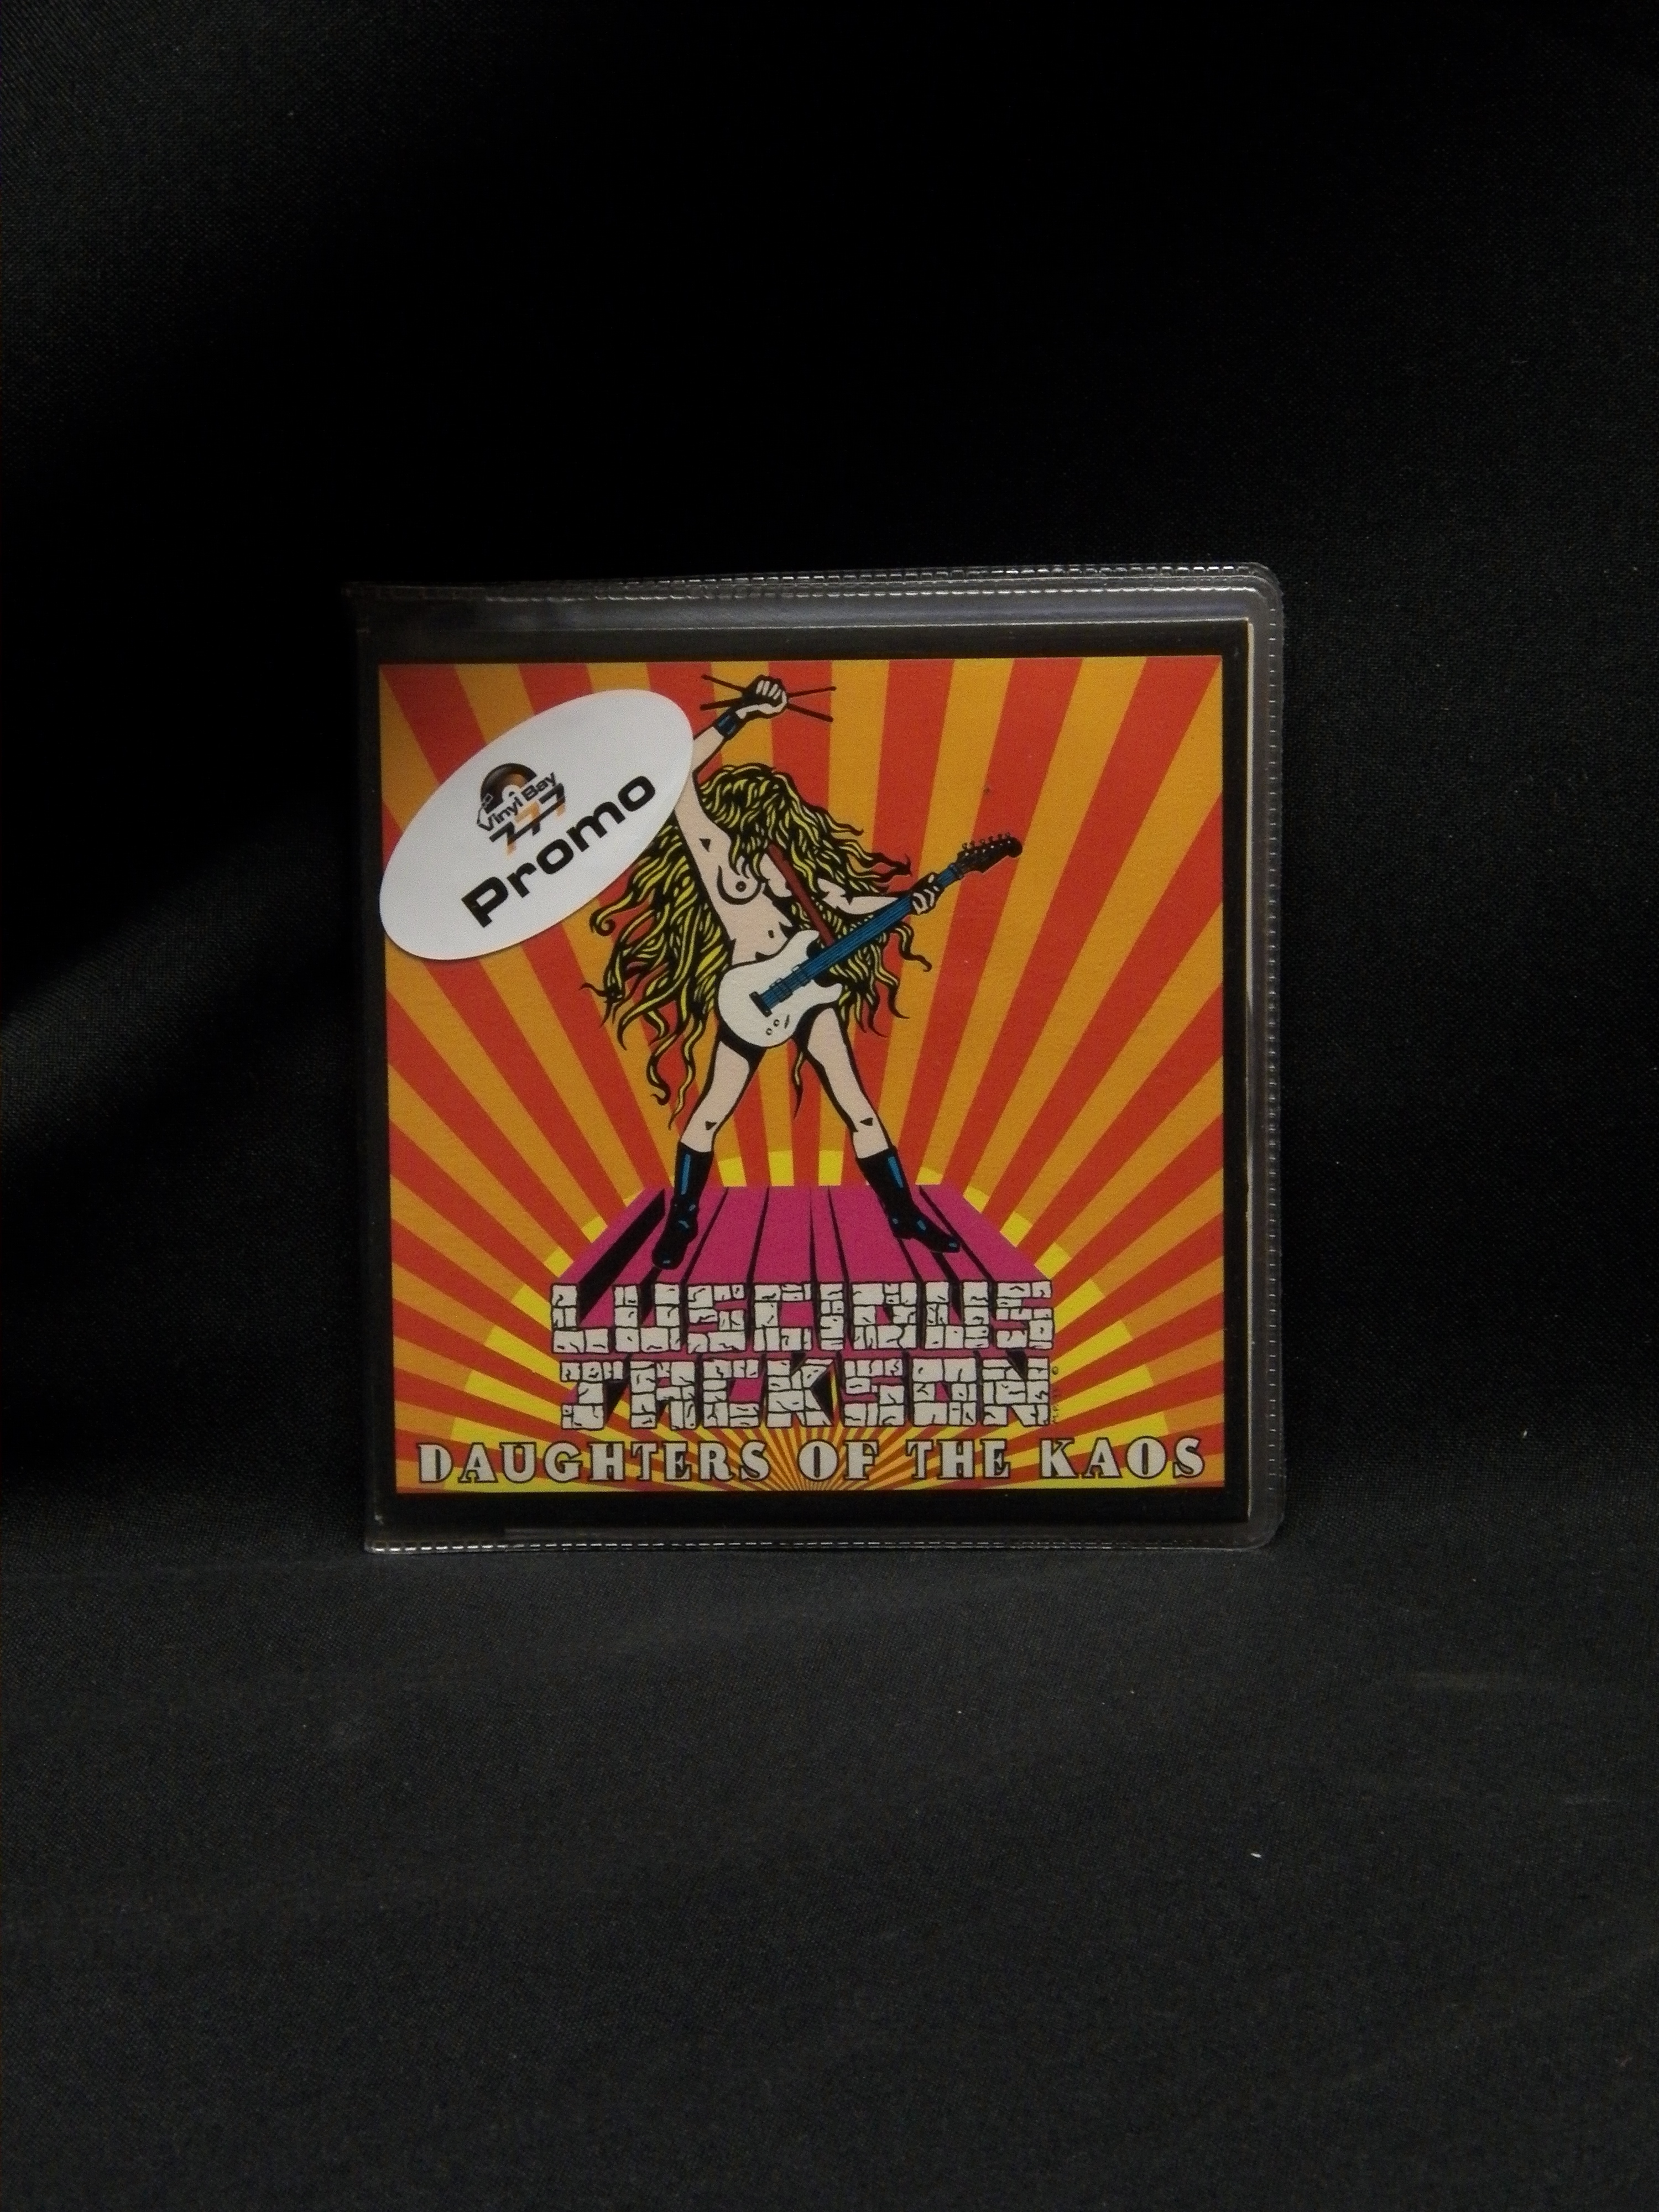 Used 2 Cd Set Luscious Jackson Daughters Of The Kaos In Search Manny 1993 Capitol Records Grand Royal Promo Vinylbay777